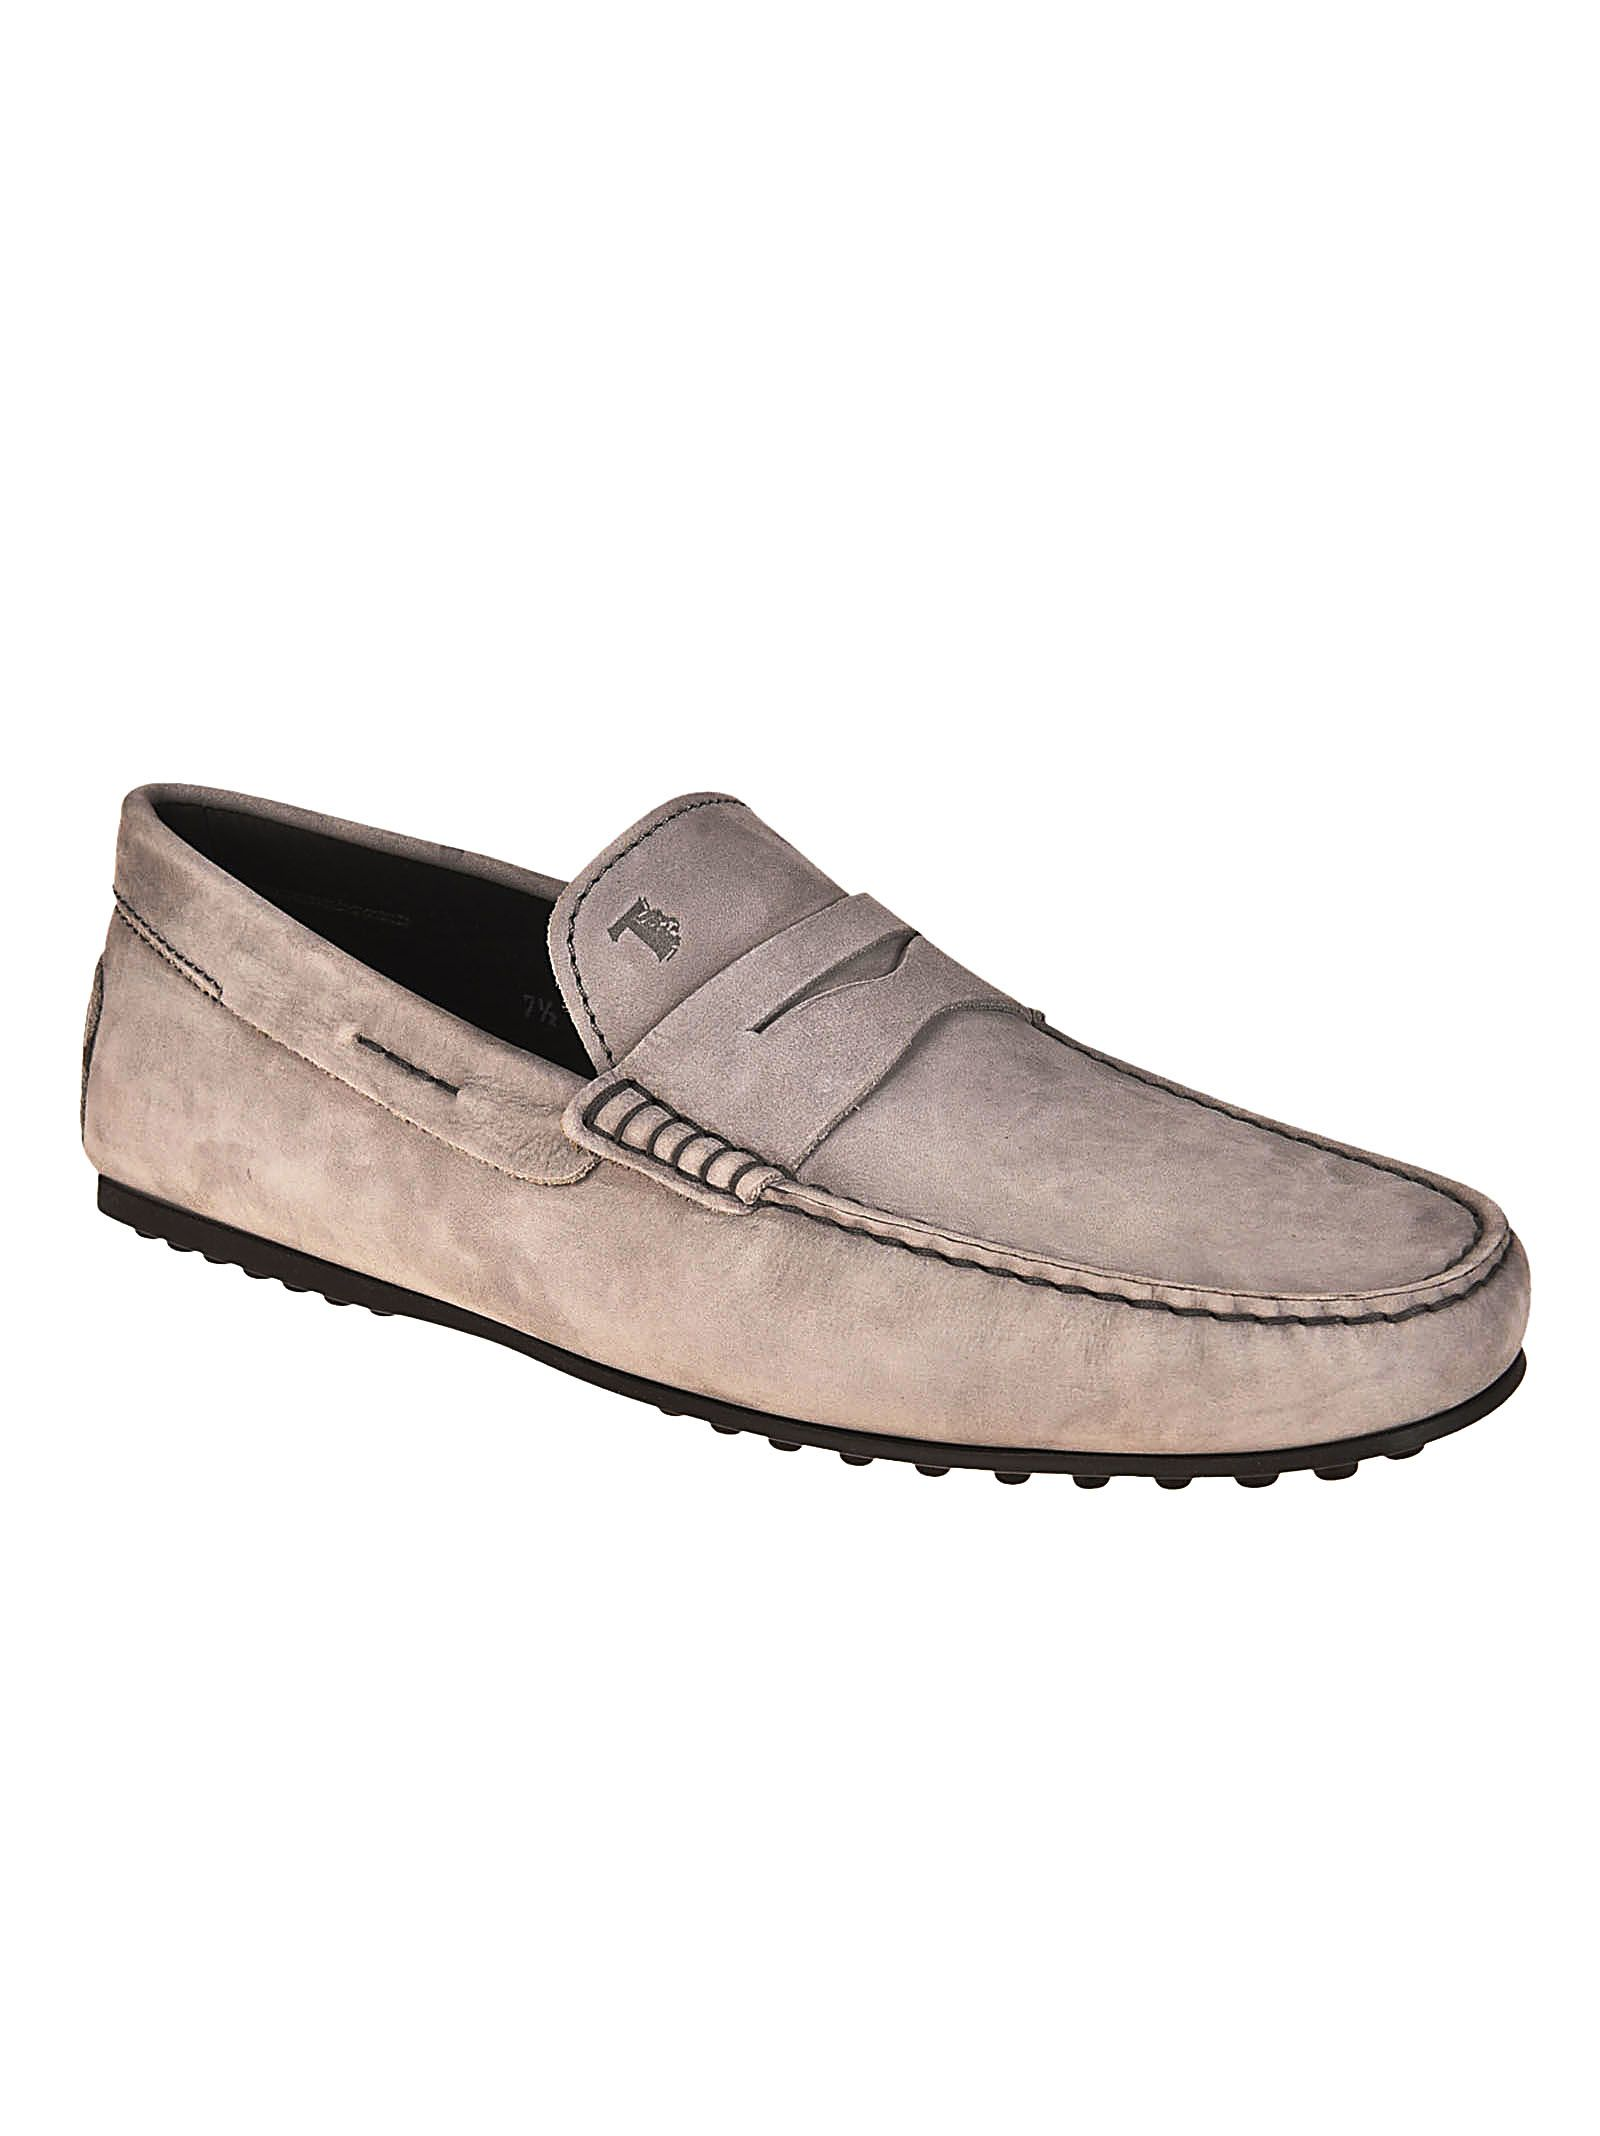 classic slip-on loafers - Grey Tod's Discount 100% Authentic Clearance Latest Collections XwlBY4jWQe